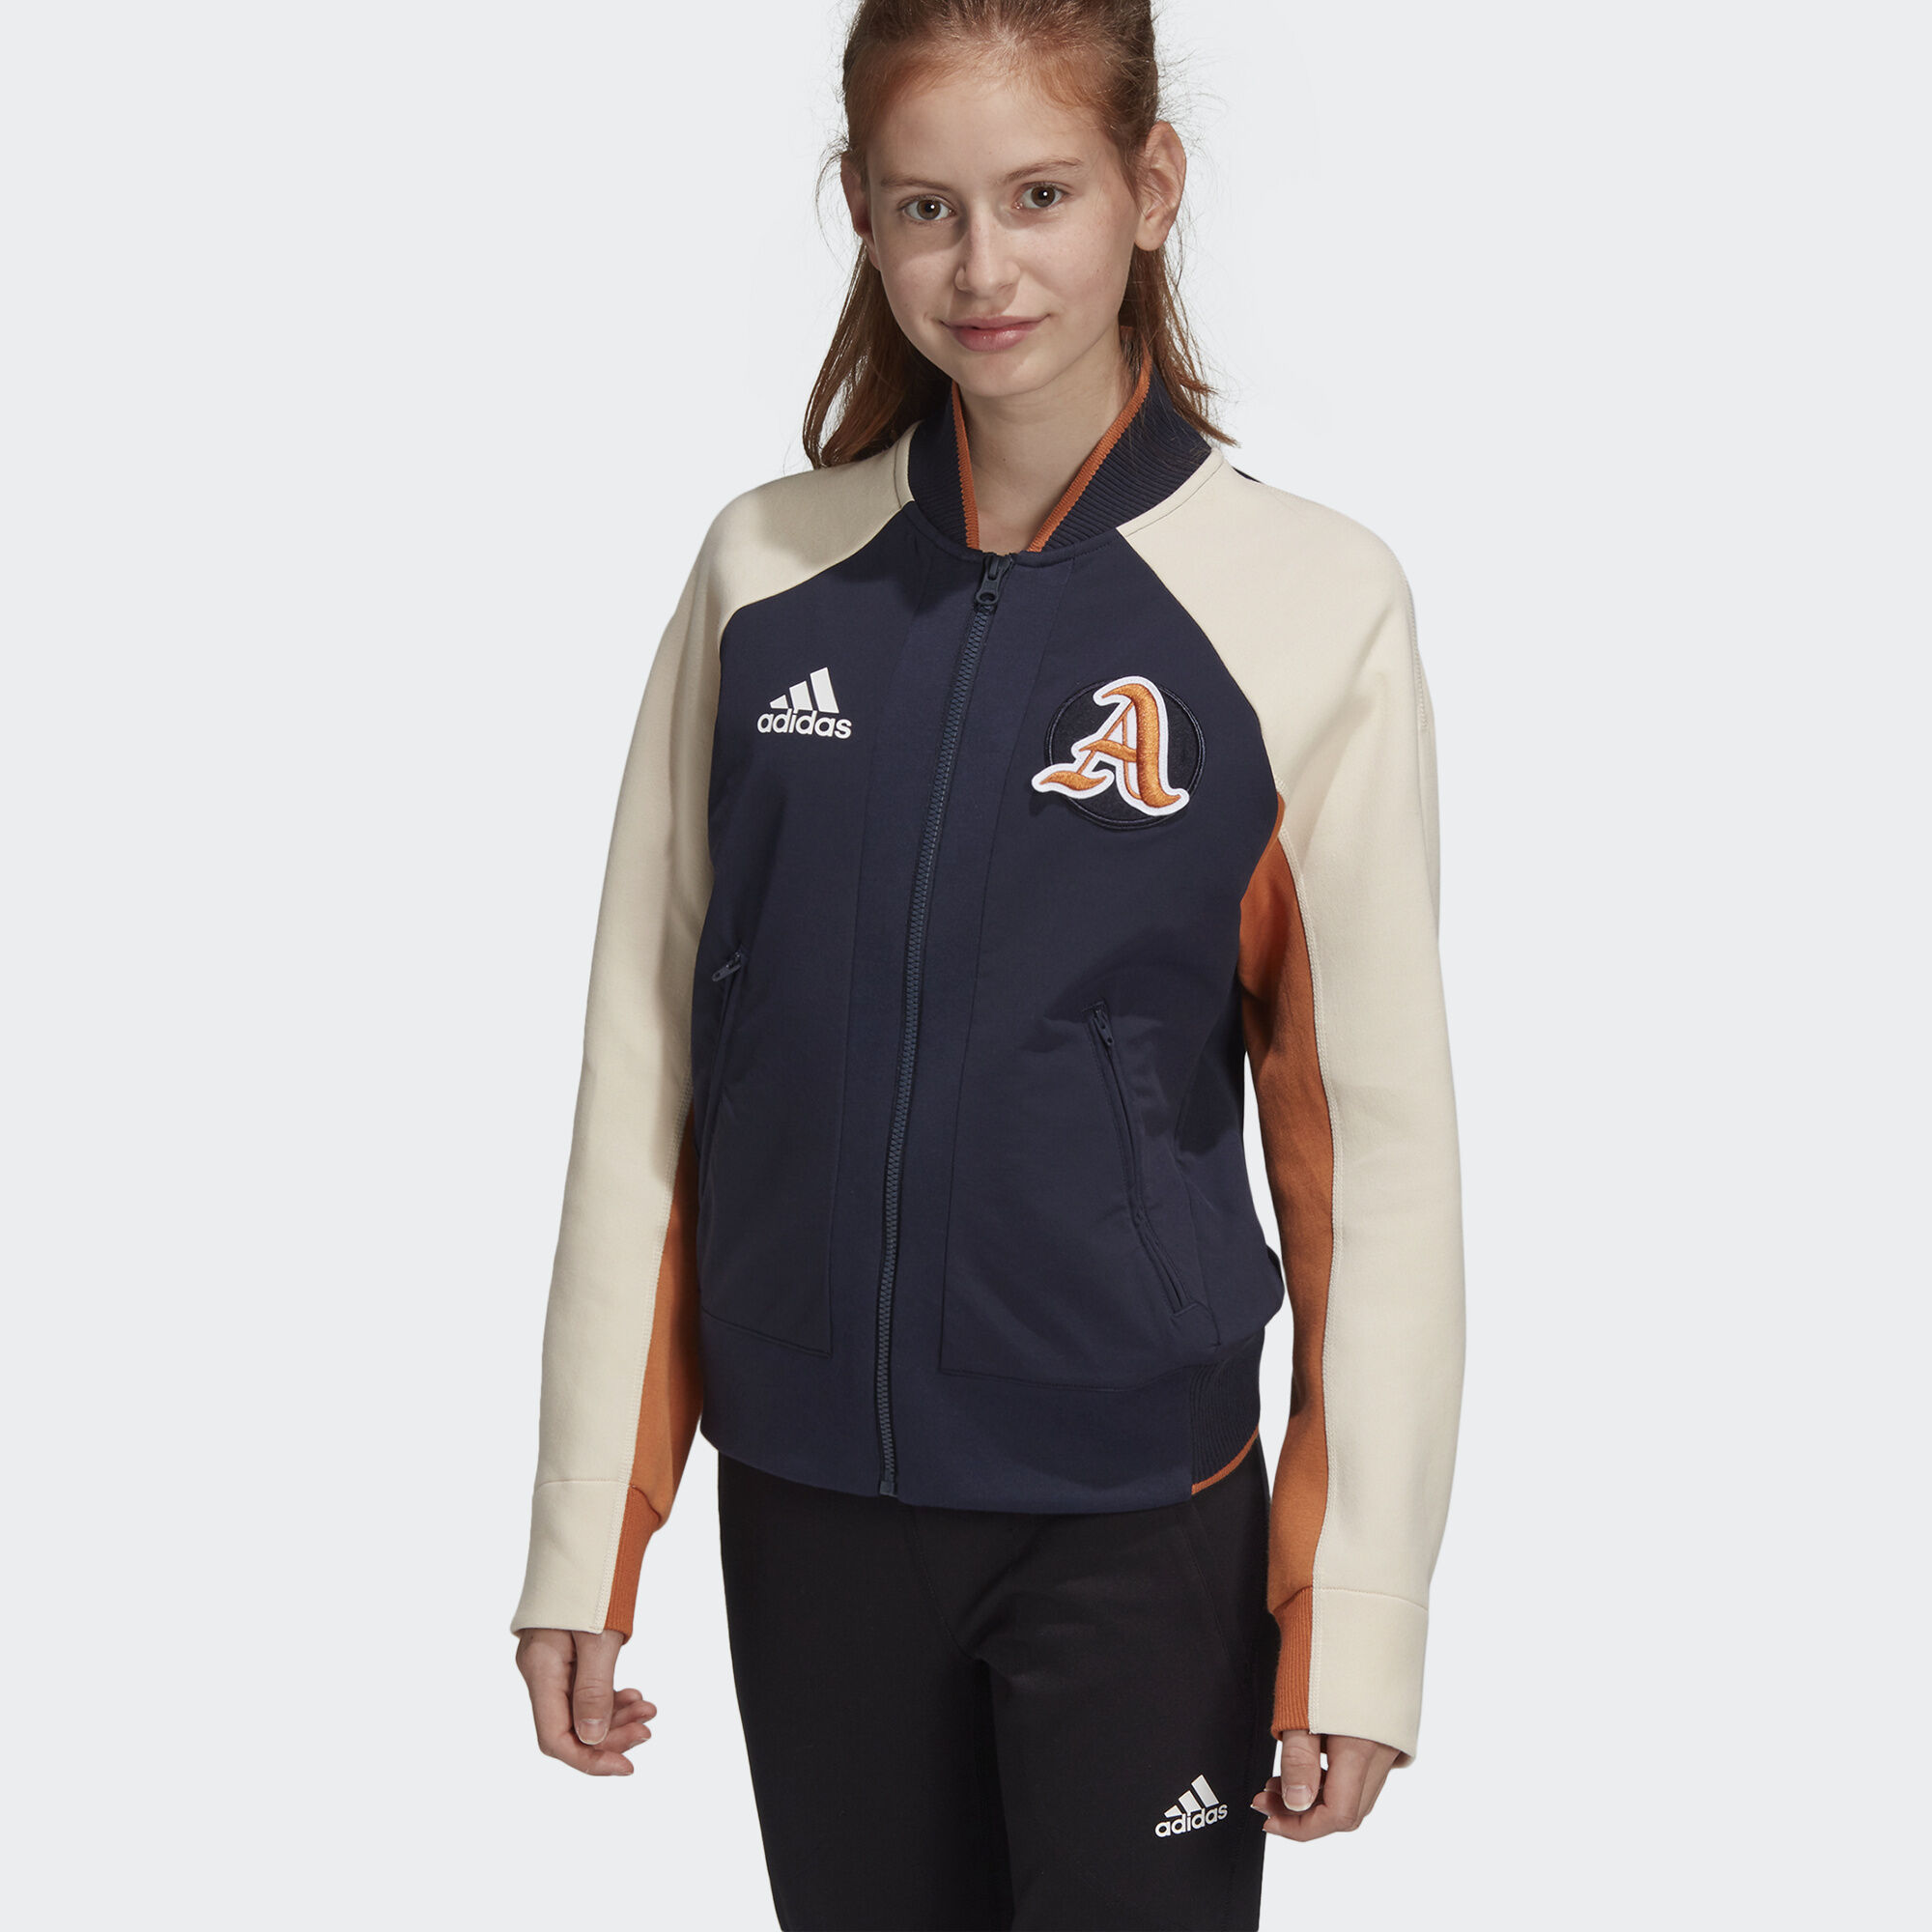 Олимпийка VRCT adidas Athletics